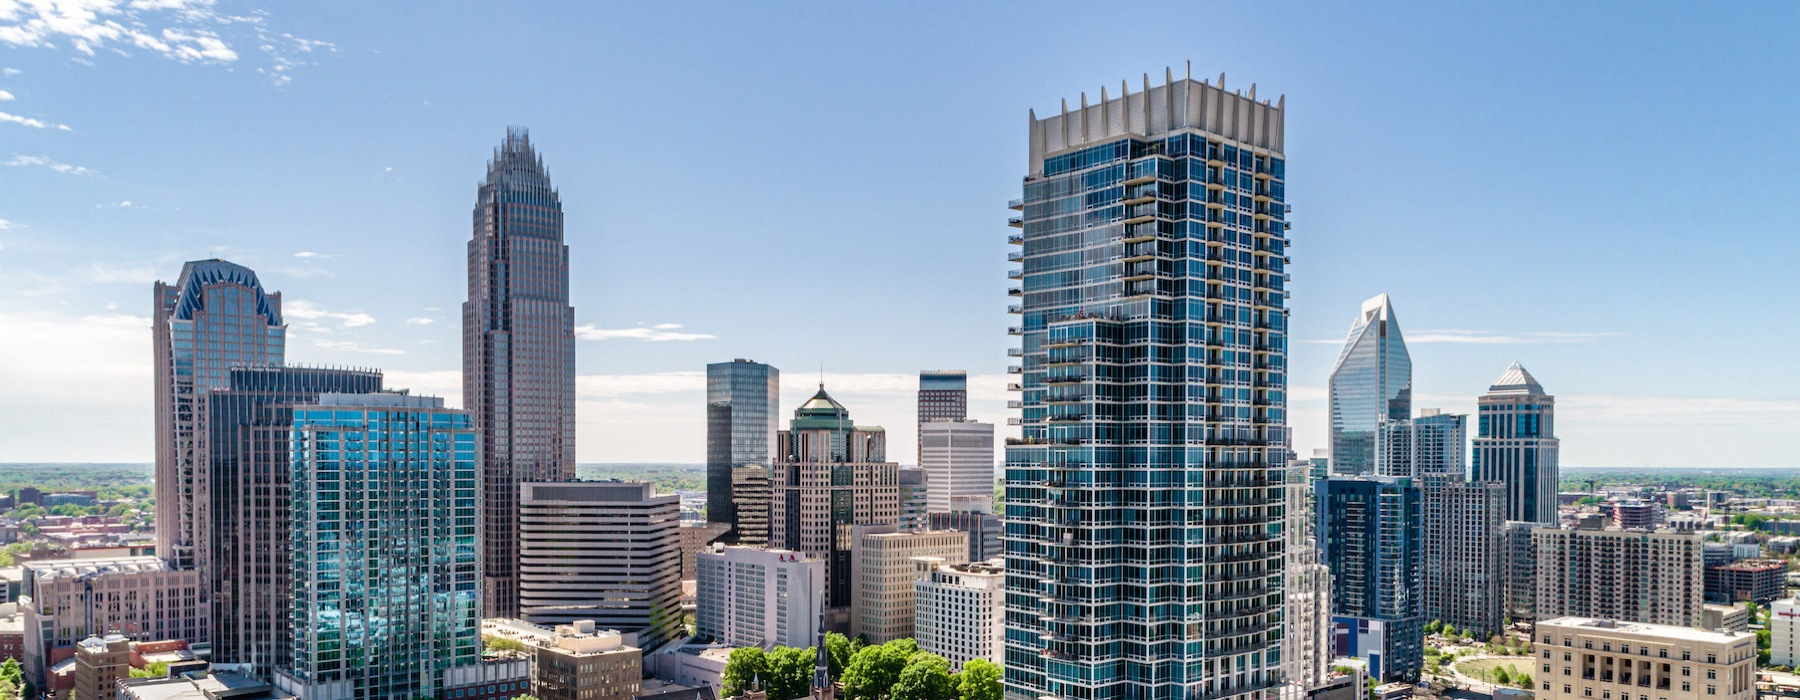 The VUE - Luxury Living in Uptown Charlotte, North Carolina